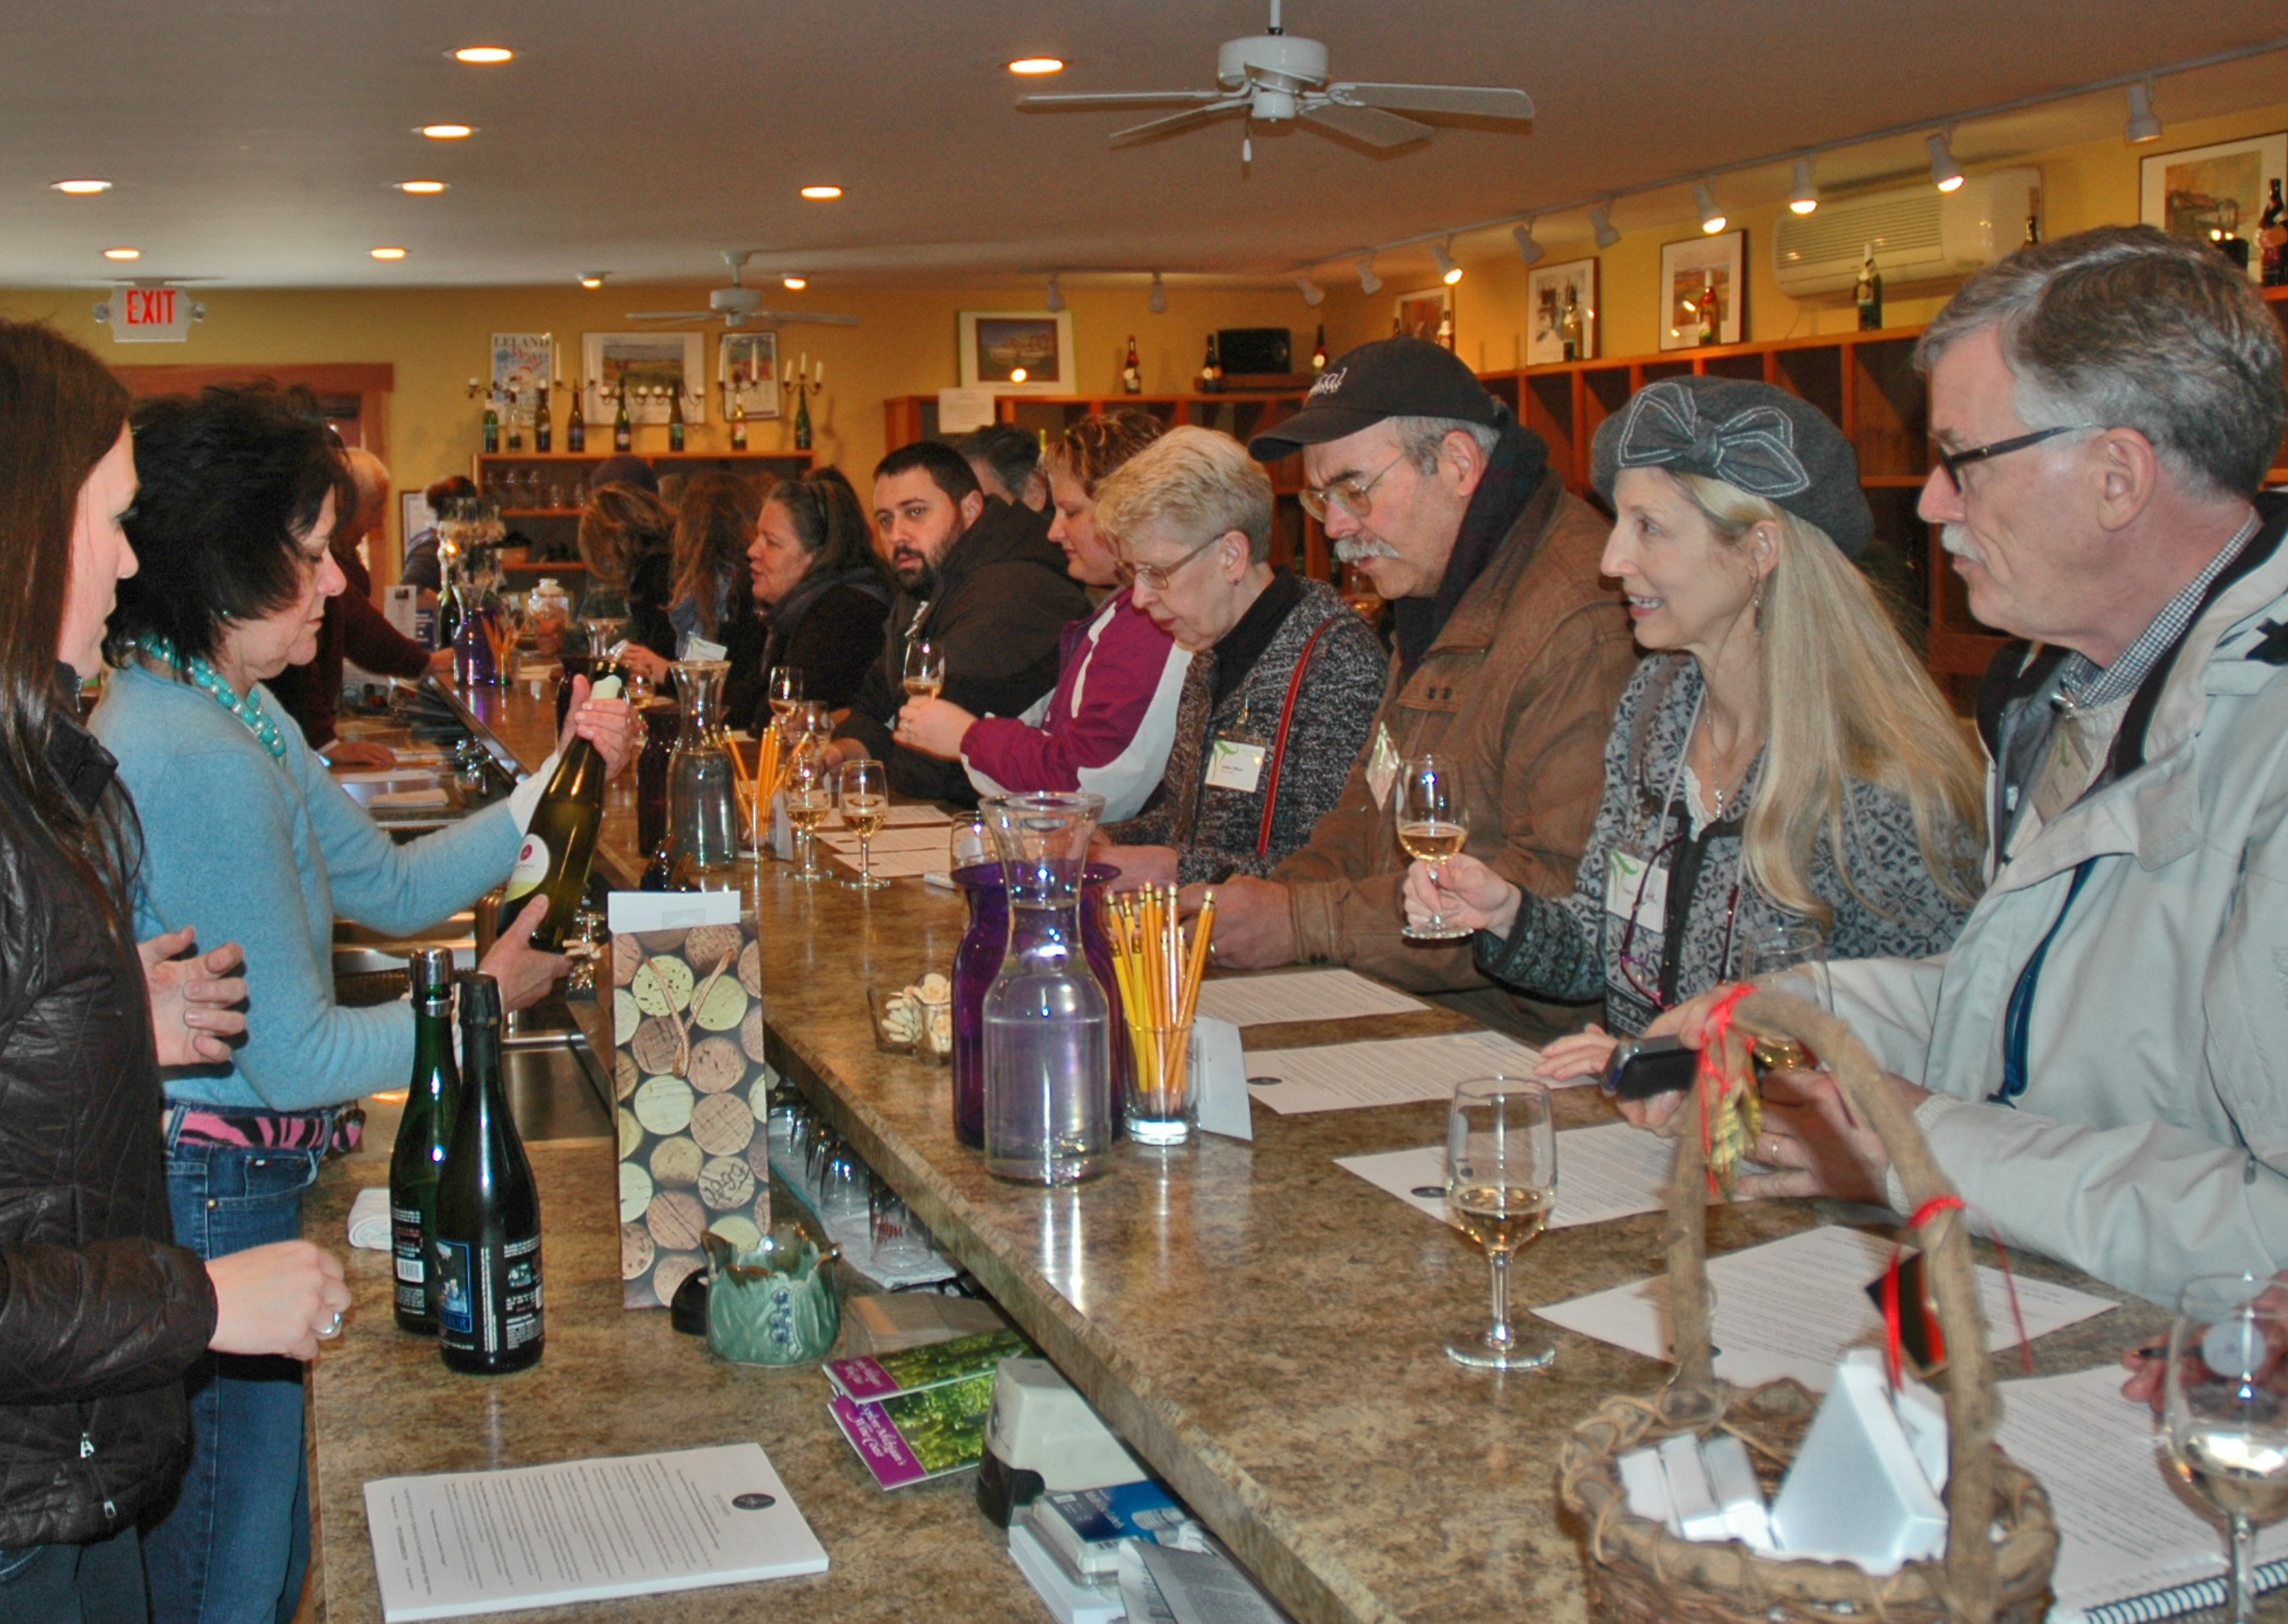 Samp,ing the new wines at Good Harbor  Vineyards